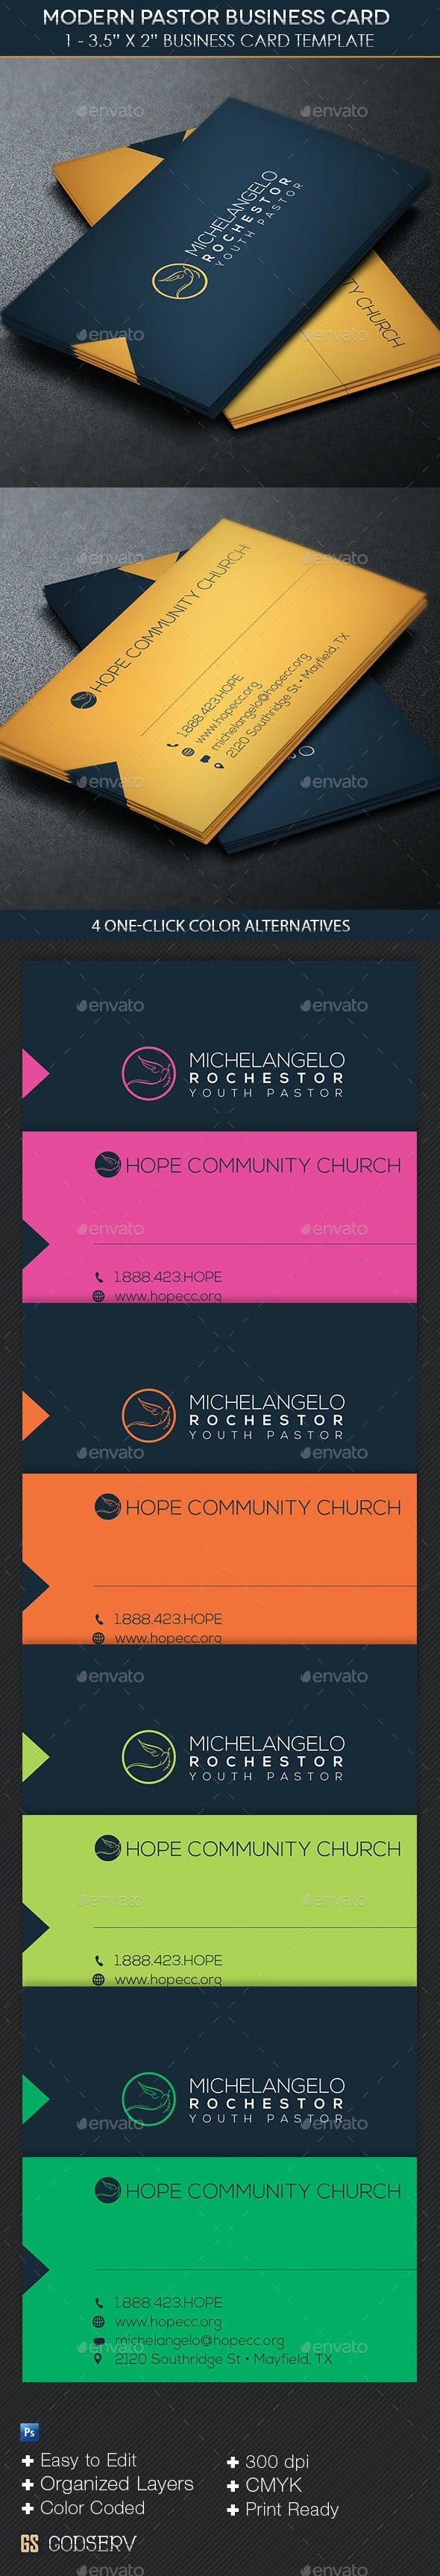 Modern Pastor Business Card Template By Godserv Graphicriver